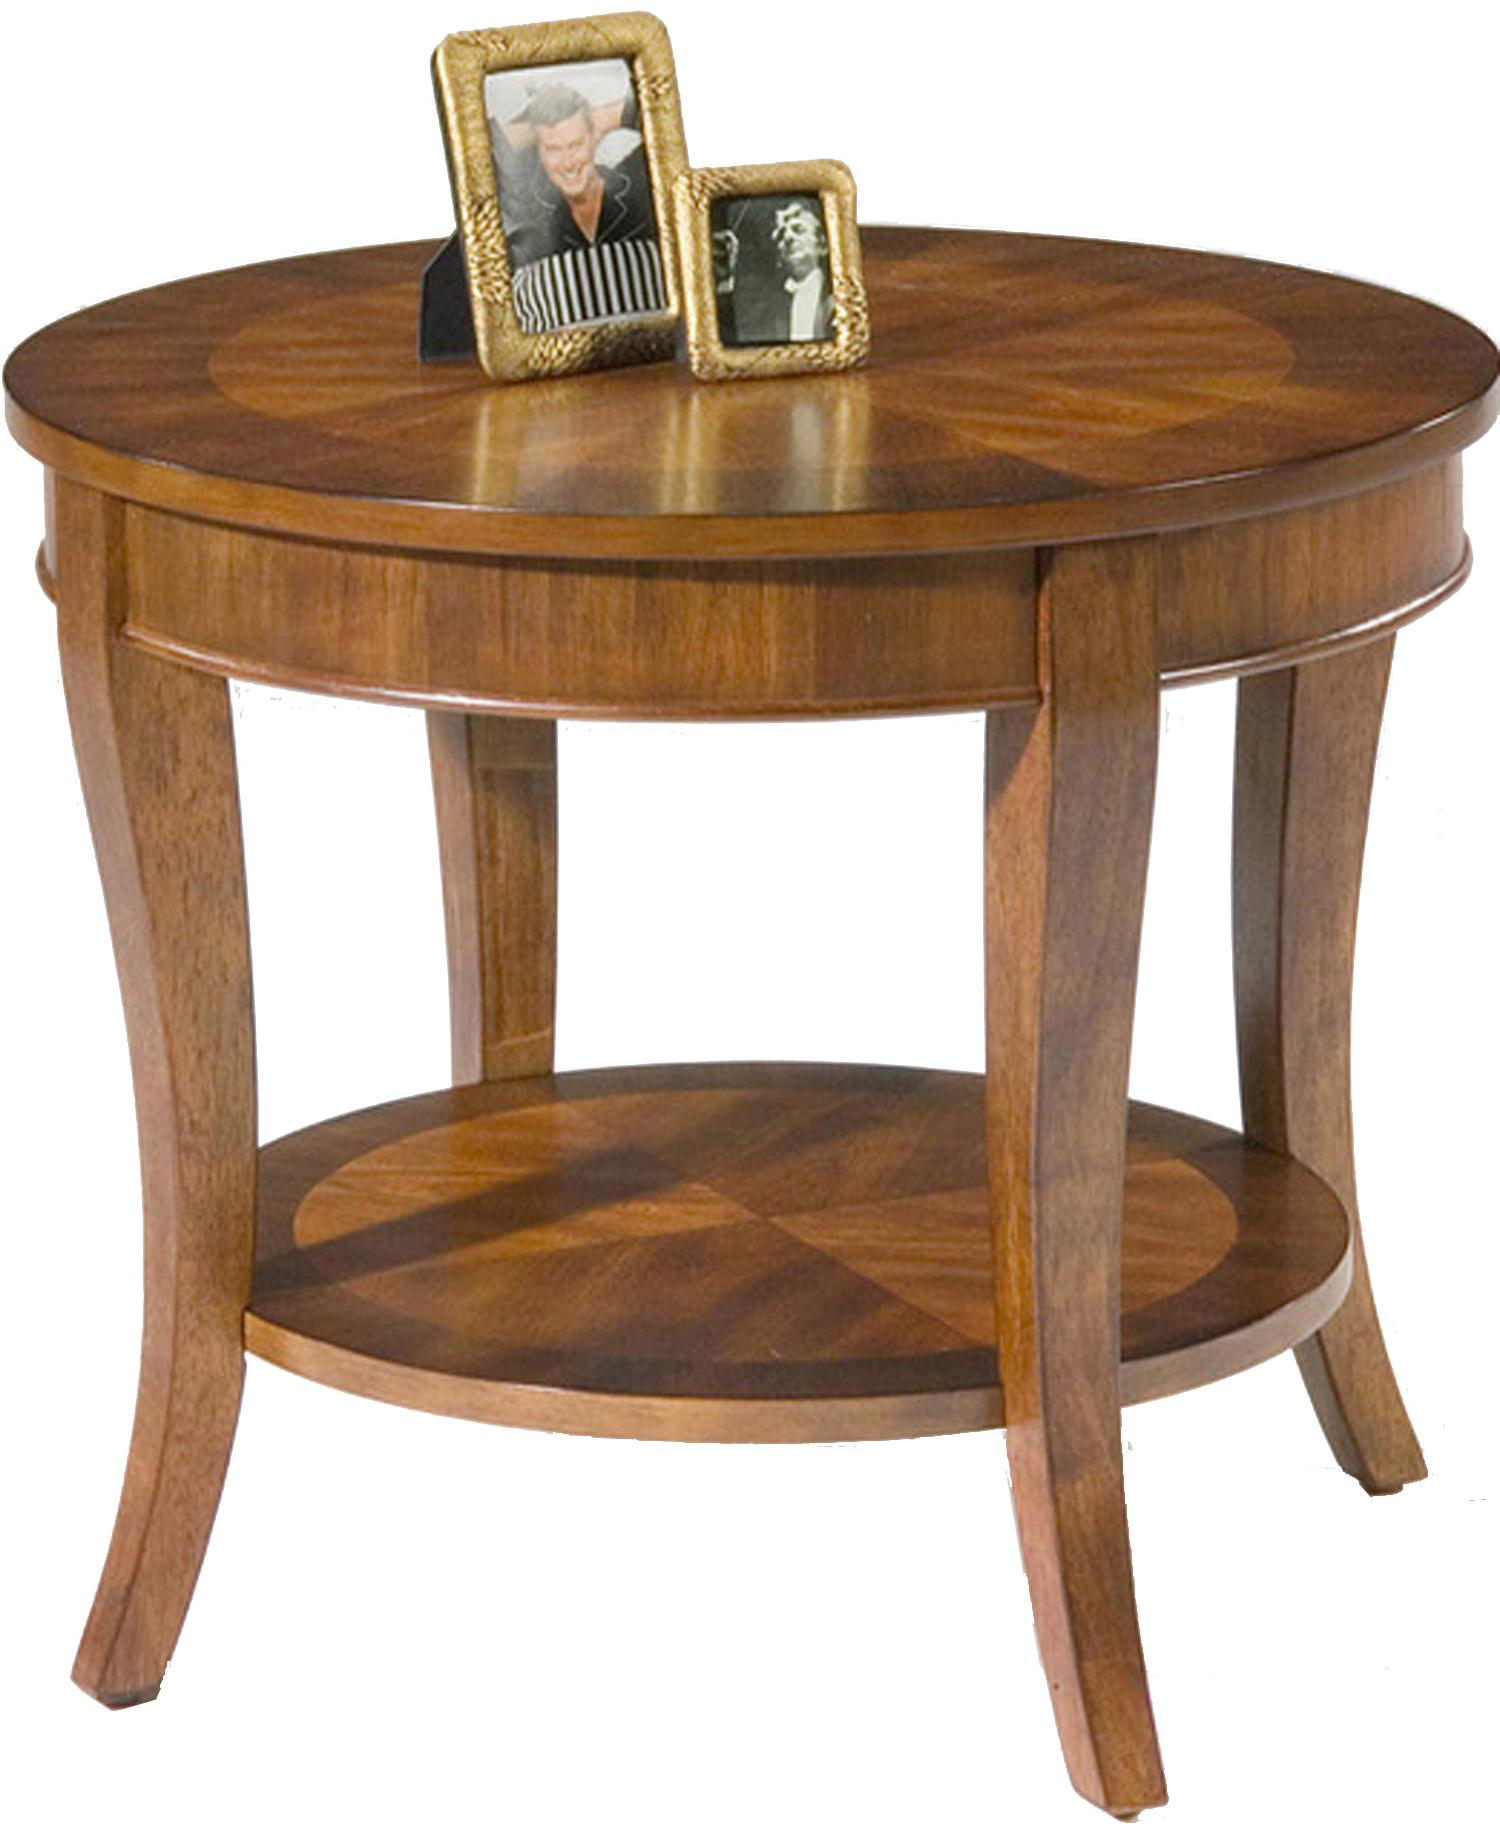 tables morello end table bernhardt accent round product